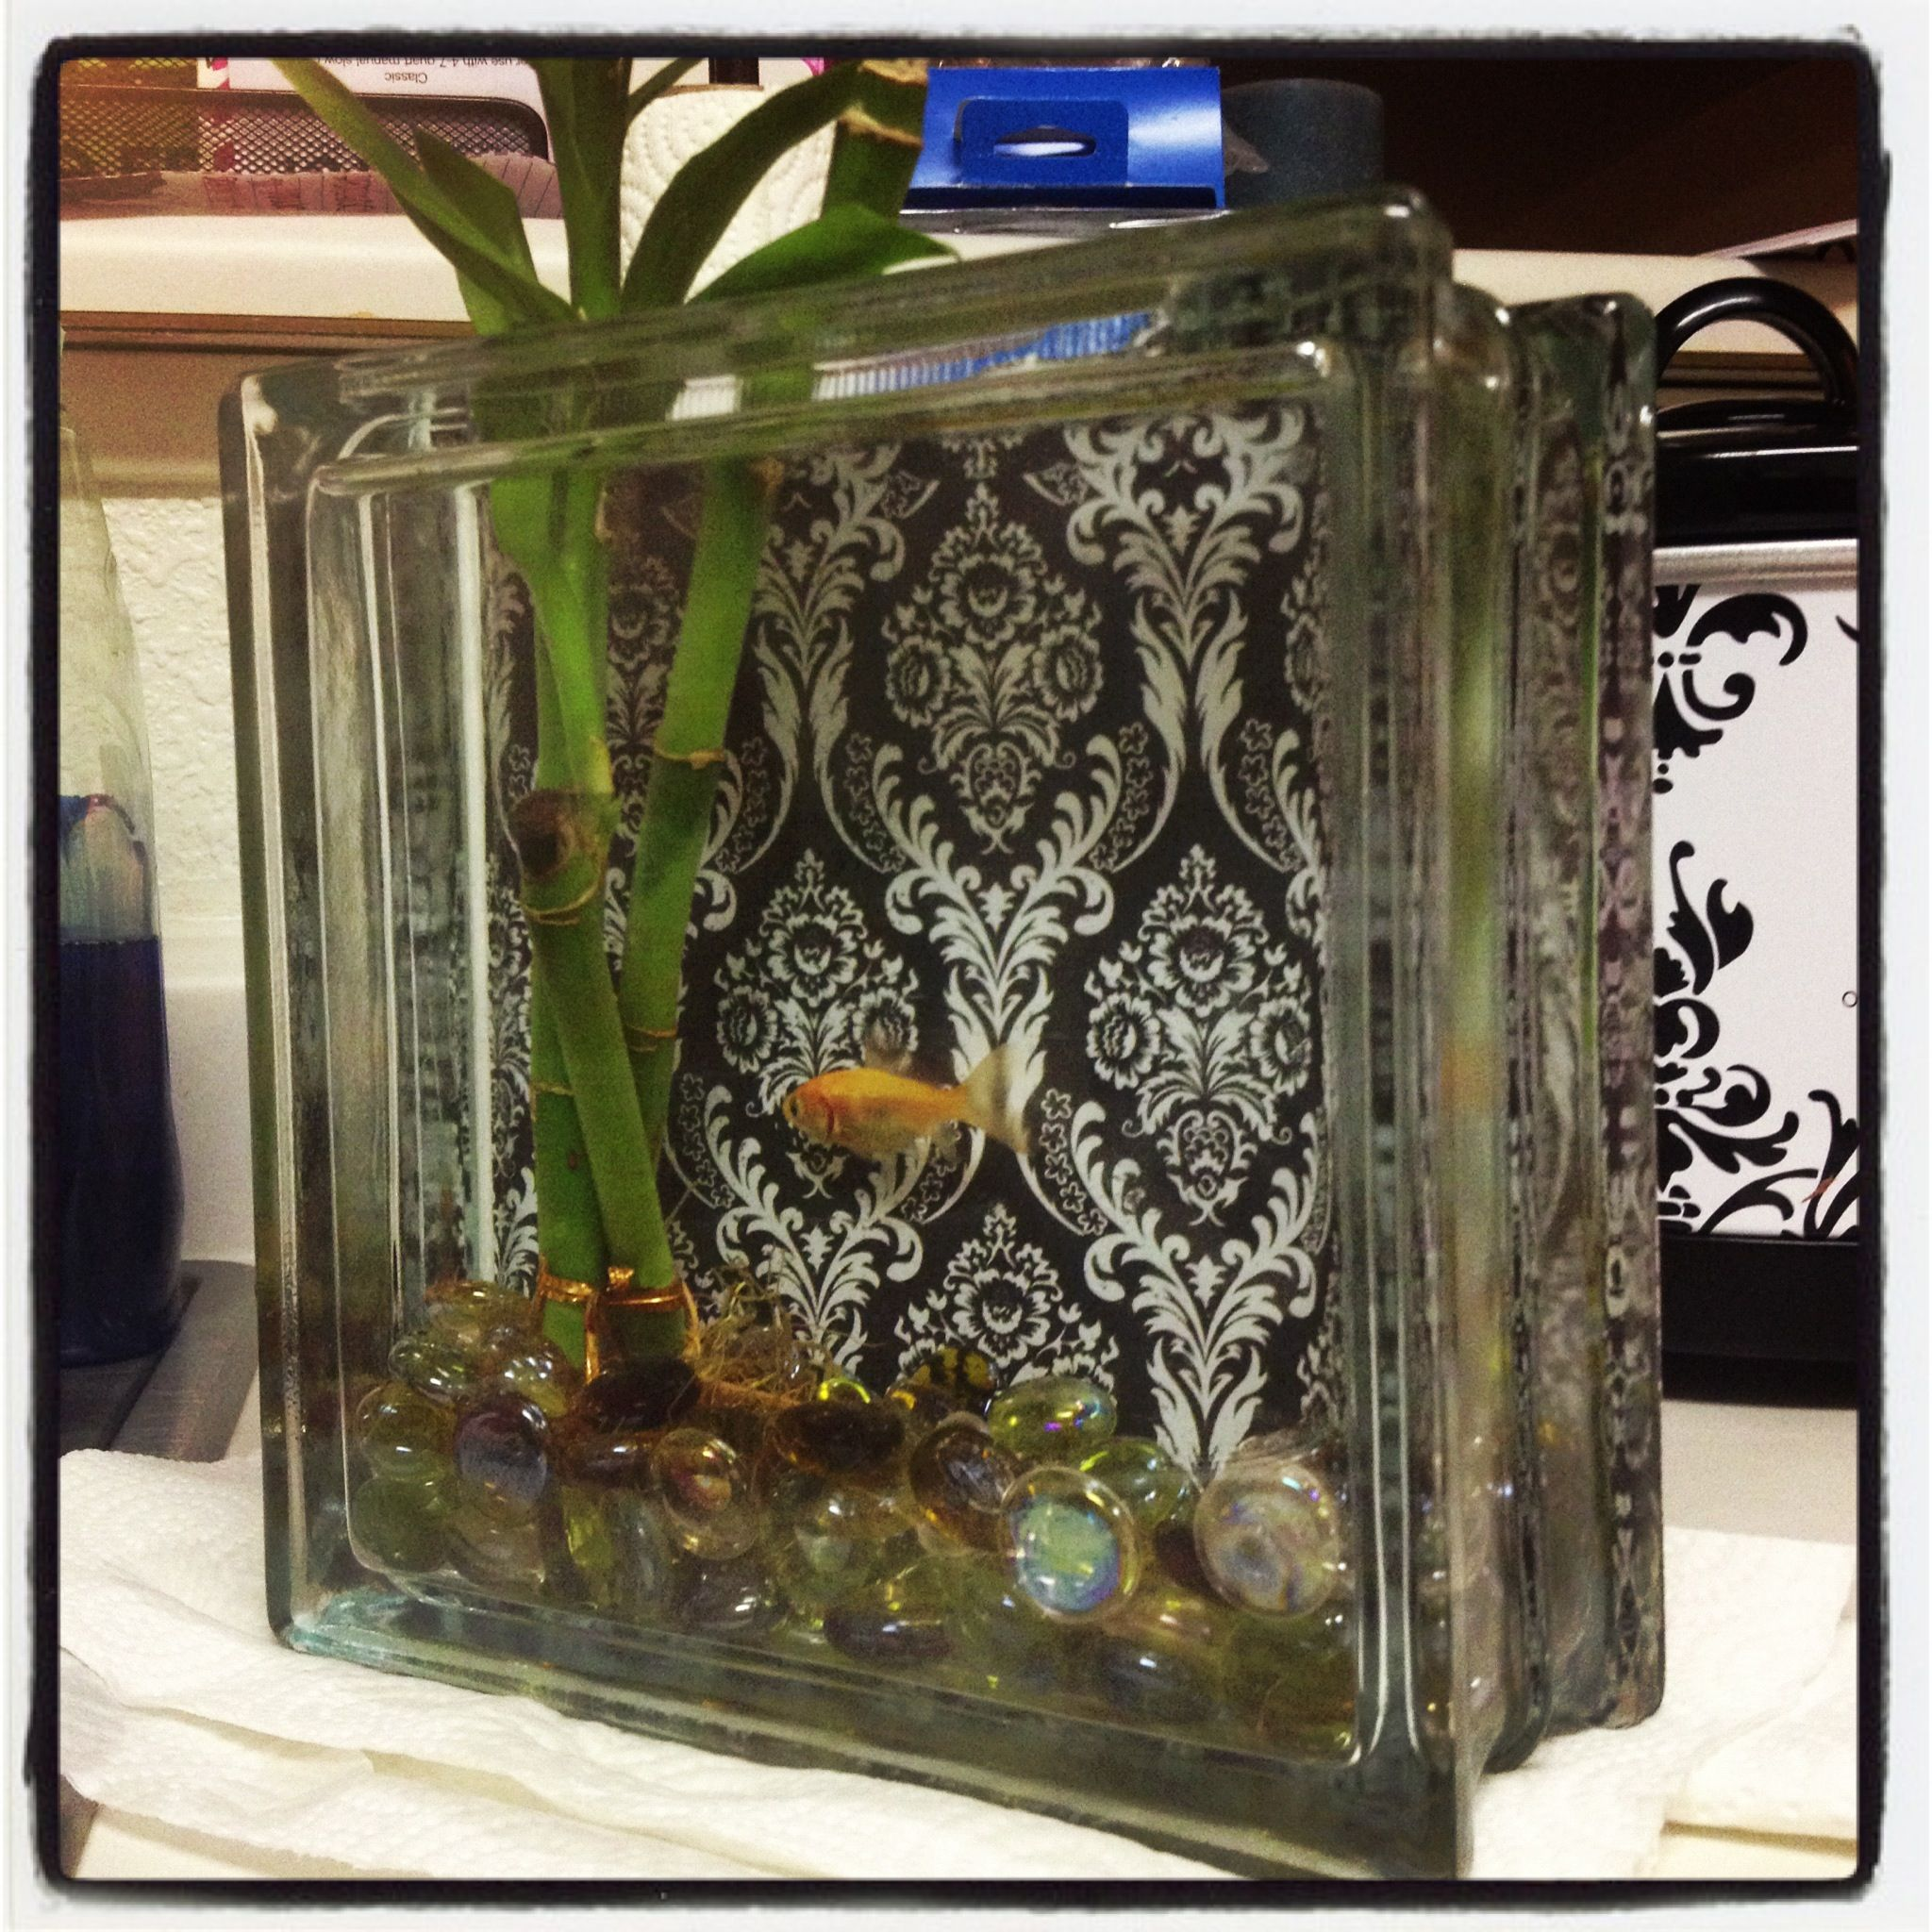 Super cute fish tank i made w a glass block at craft for Cute fish tanks